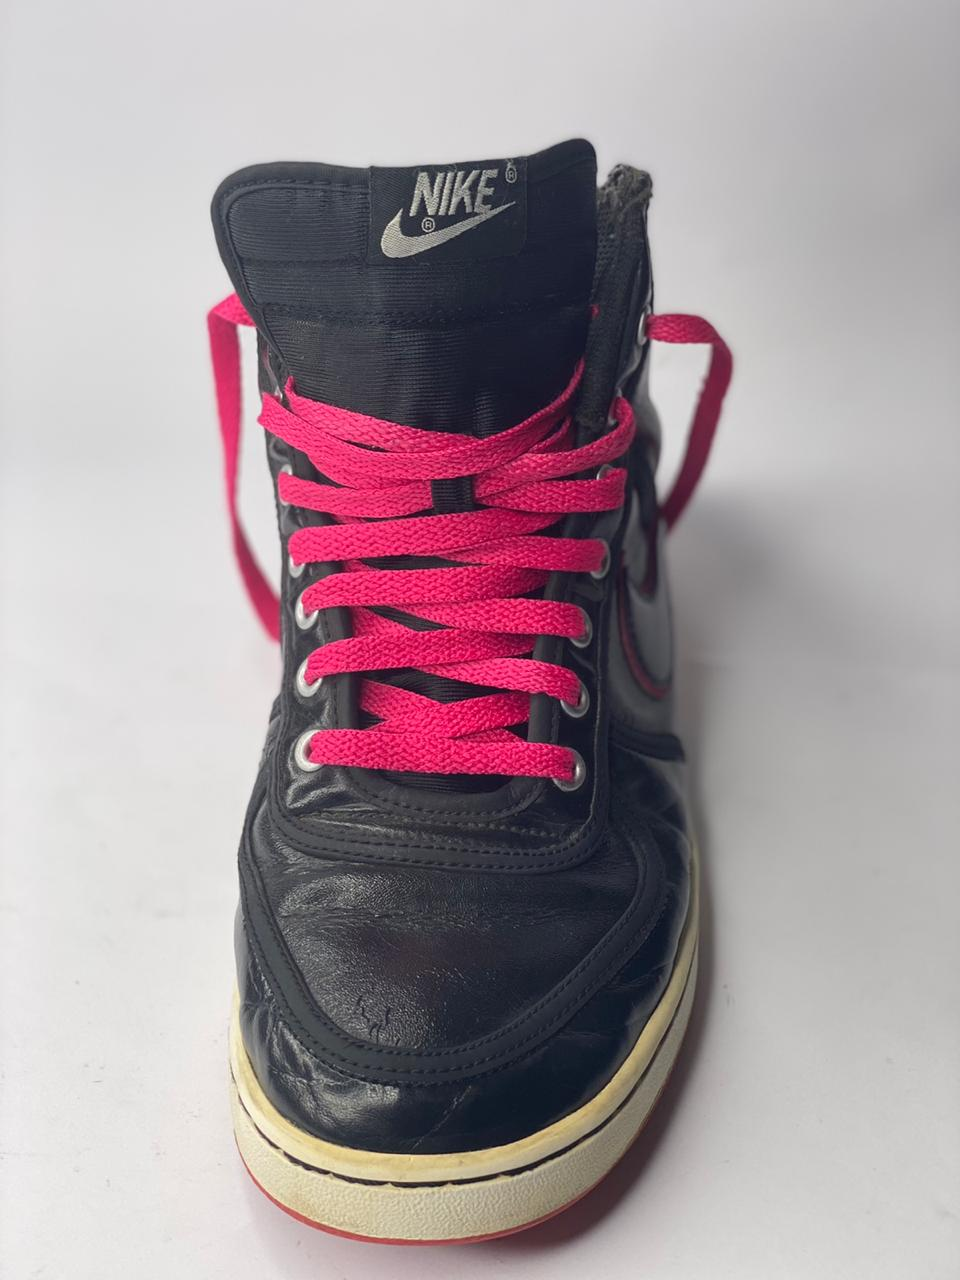 Nike Black with pink contrast, Size US#9.5, UK#7, PAK#41